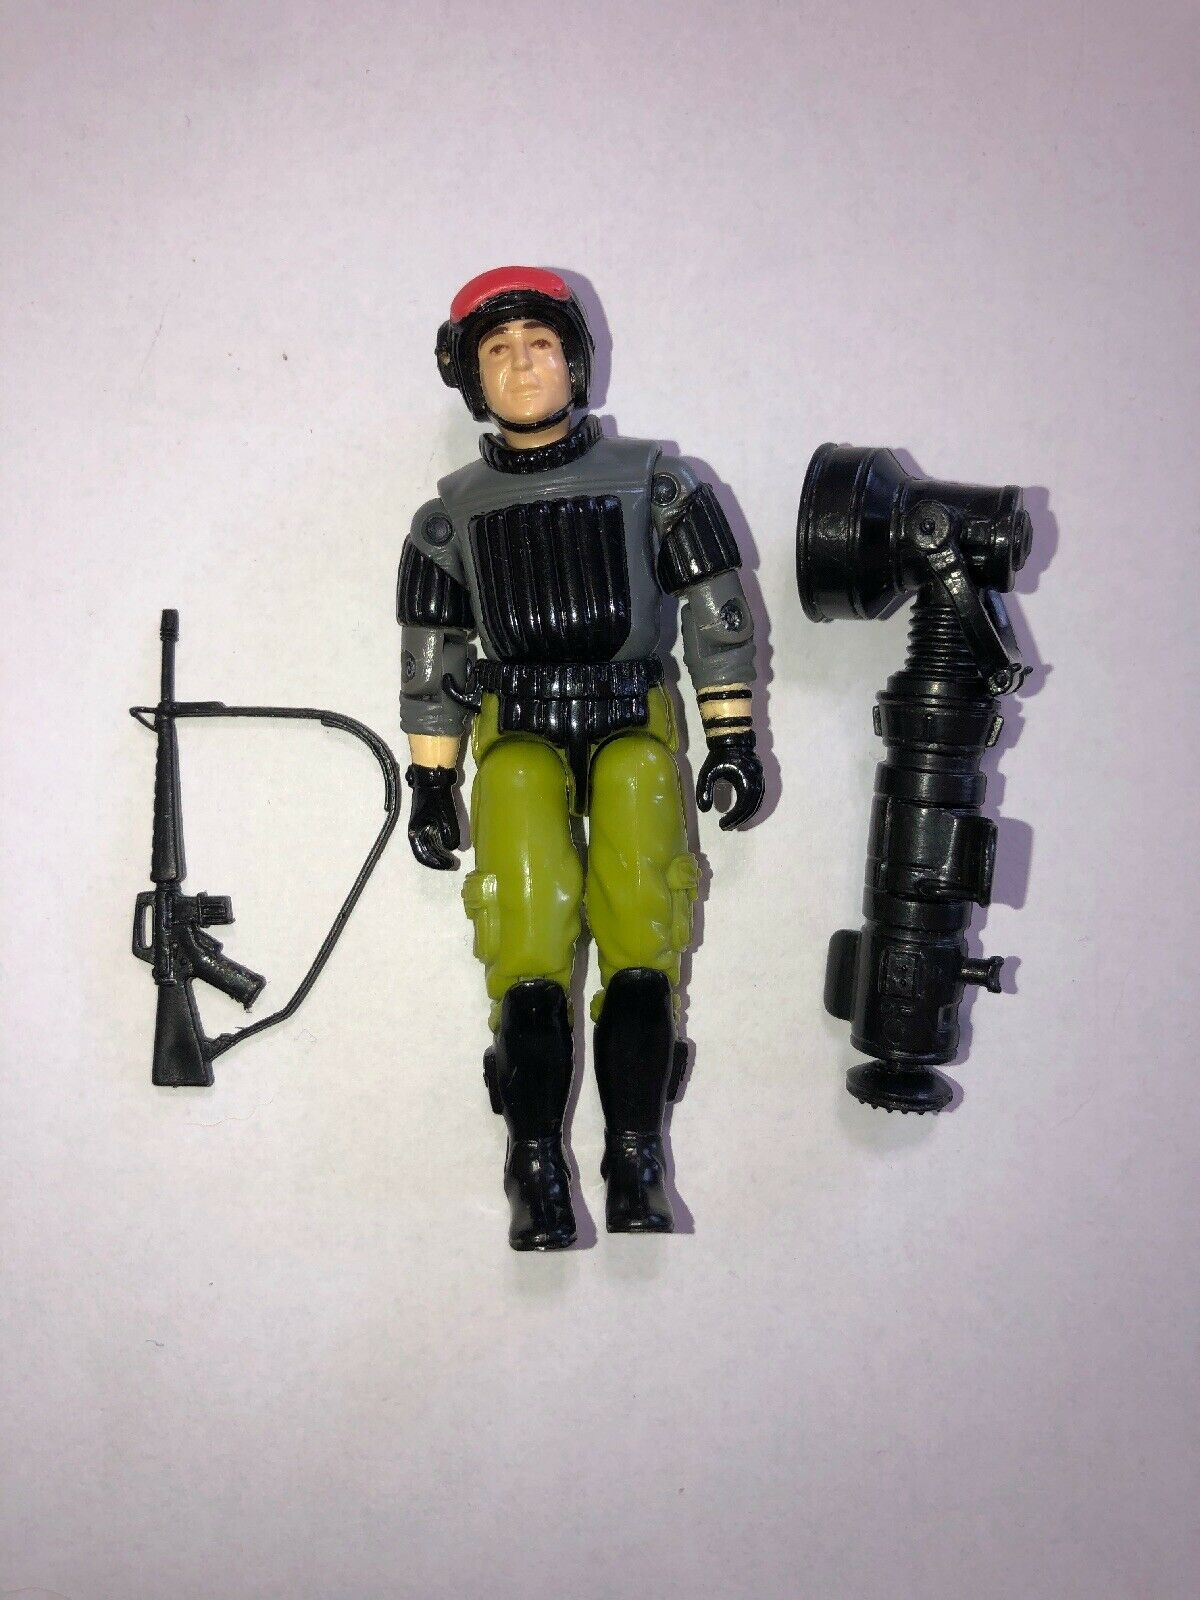 GI JOE Night Force Sneak Peak 1988 Rare